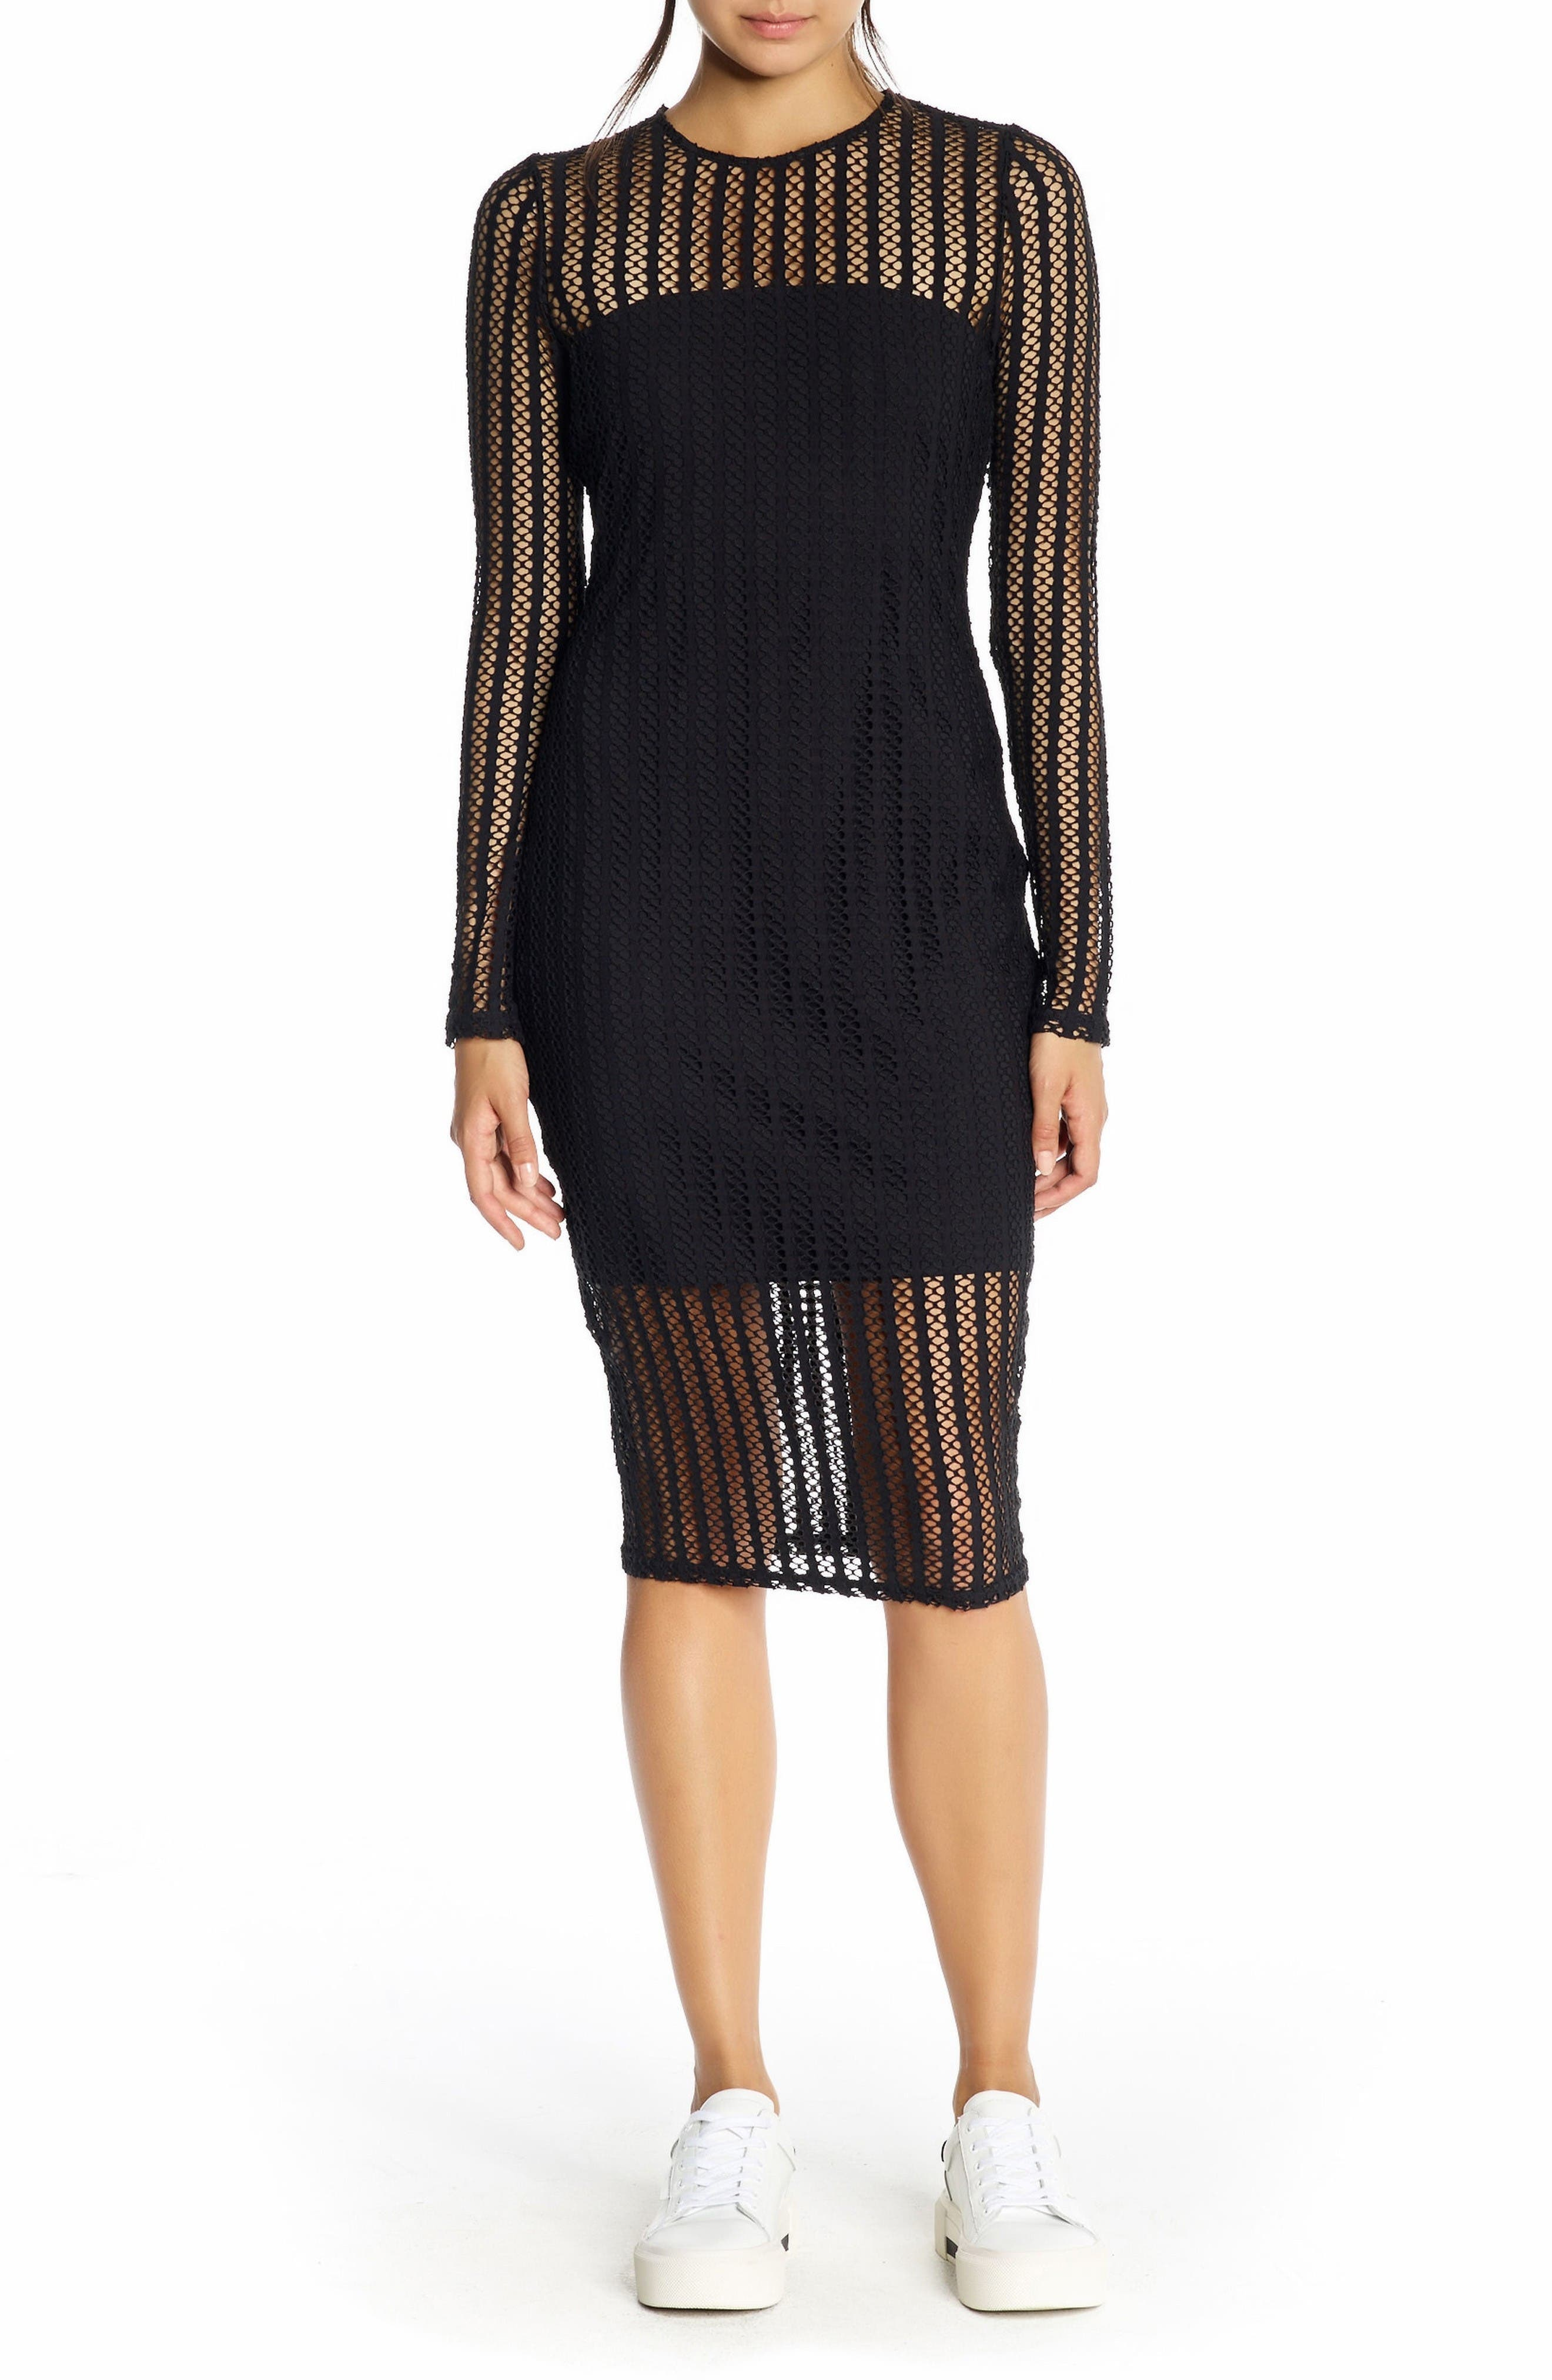 Alternate Image 1 Selected - KENDALL + KYLIE Lattice Jersey Dress